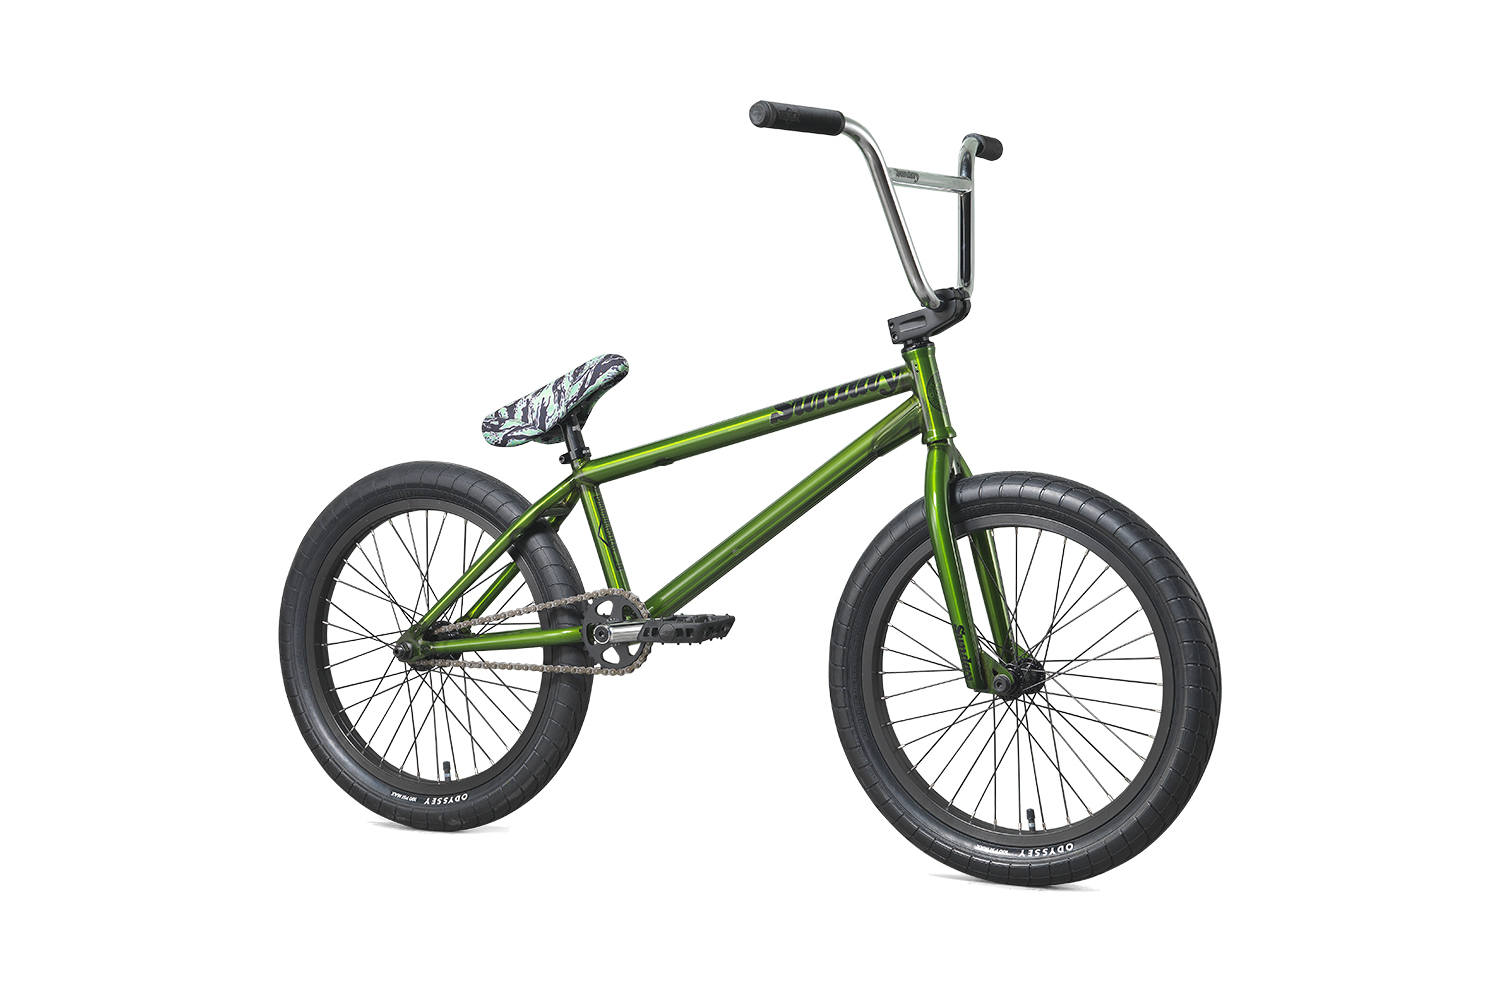 Sunday broadcaster custom - Rudy_Banegas's Bike Check - Vital BMX